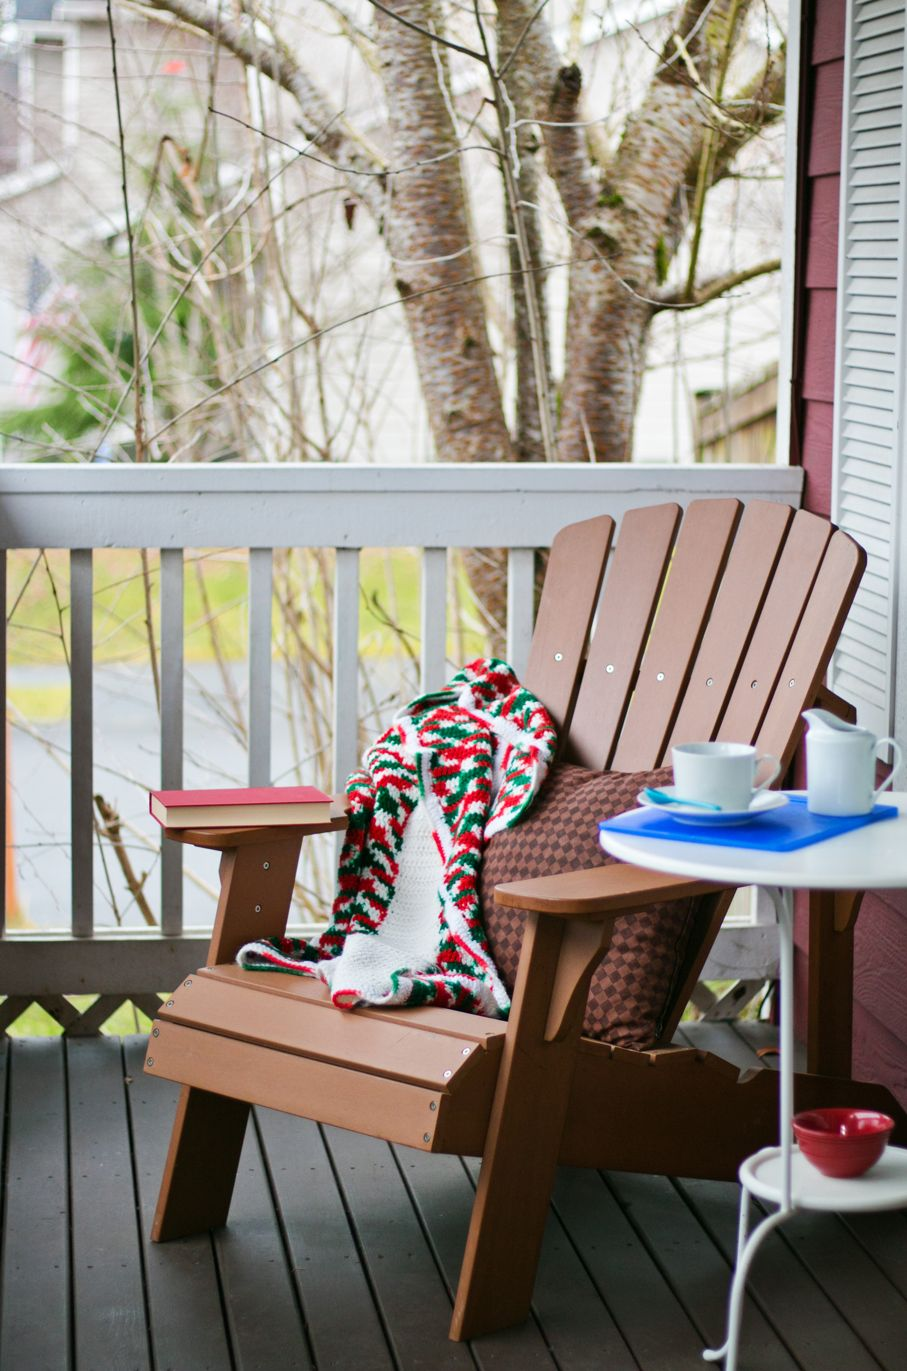 Book and Coffee on a Cozy Porch